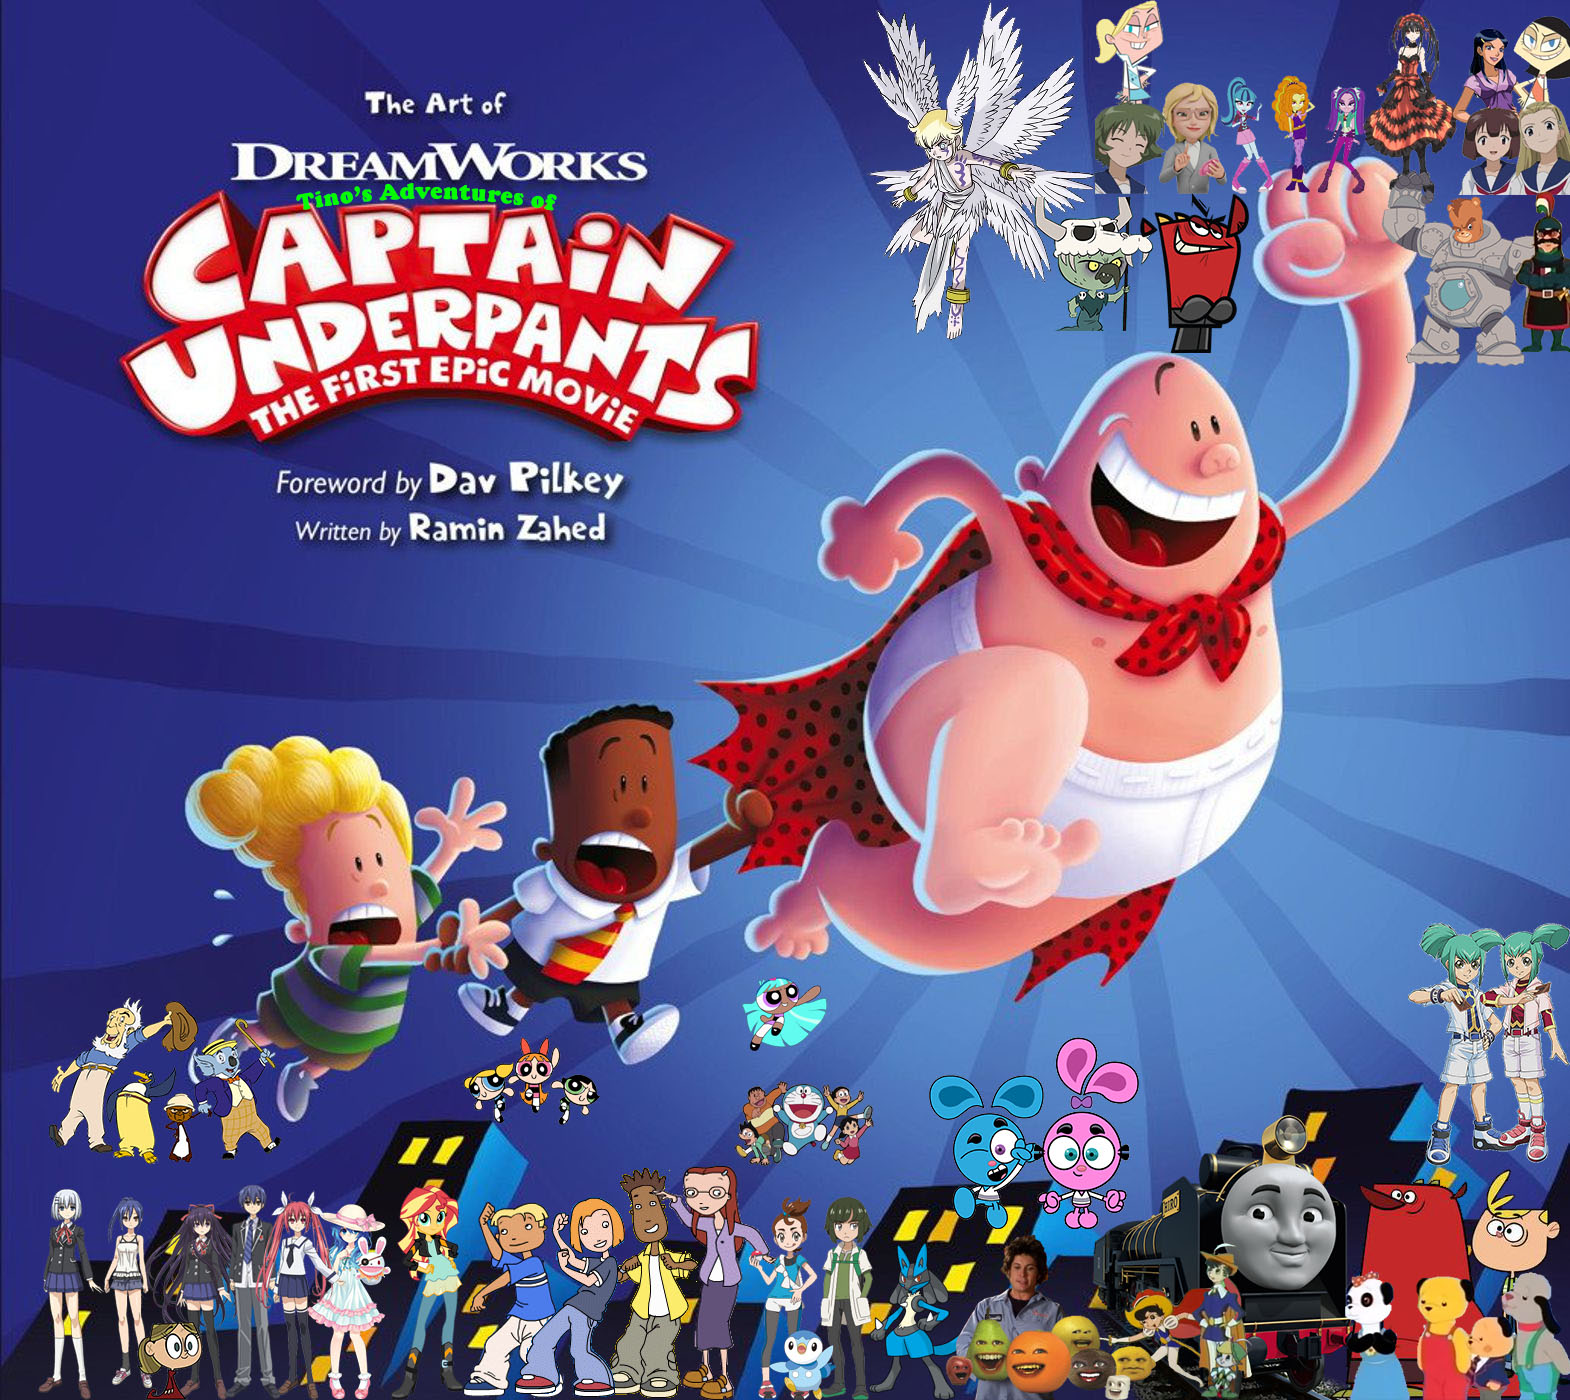 Tino S Adventures Of Captain Underpants The First Epic